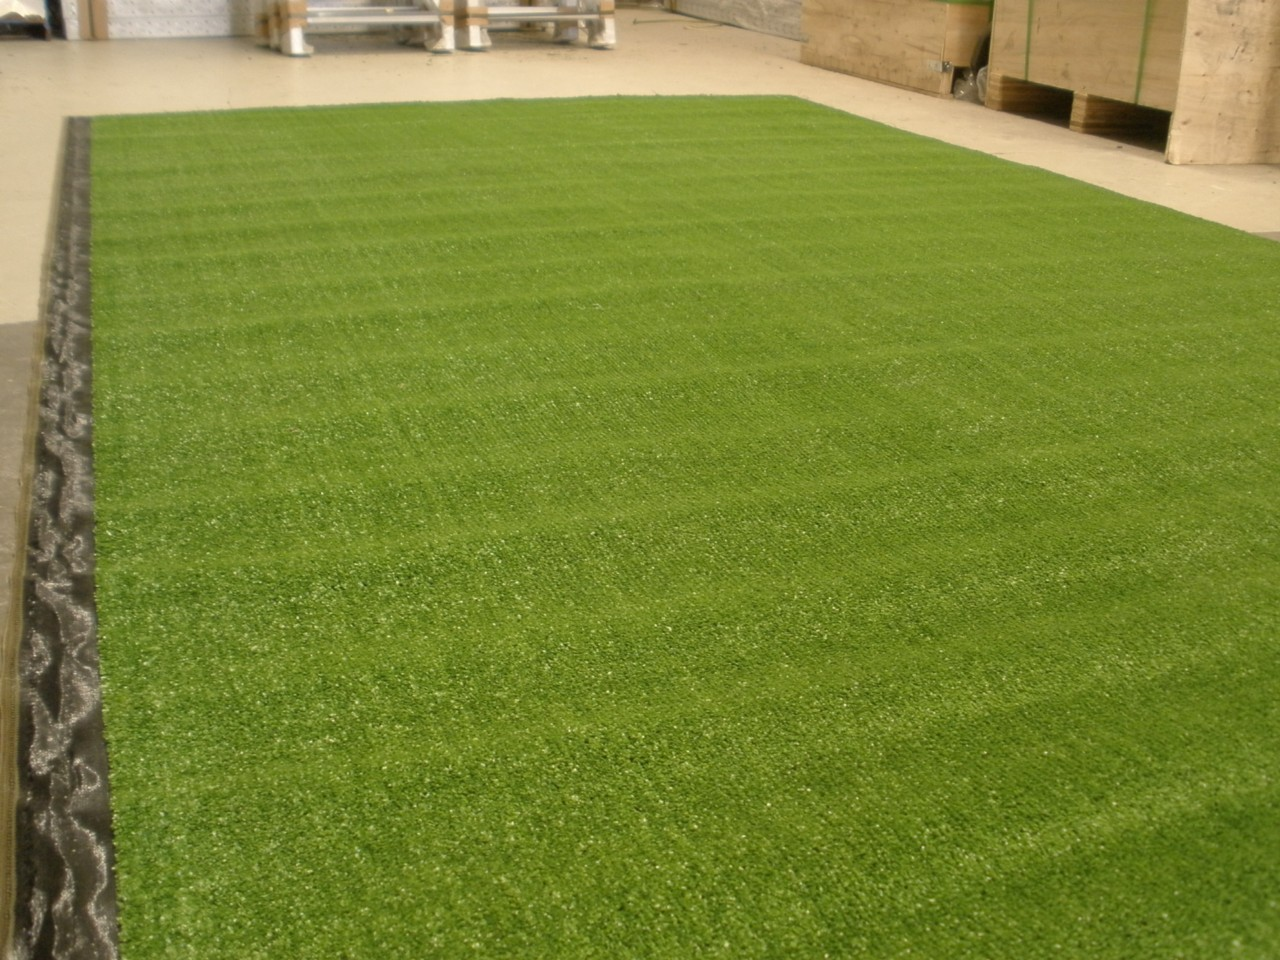 Artificial Grass, Synthetic turf, synthetic grass, fake grass